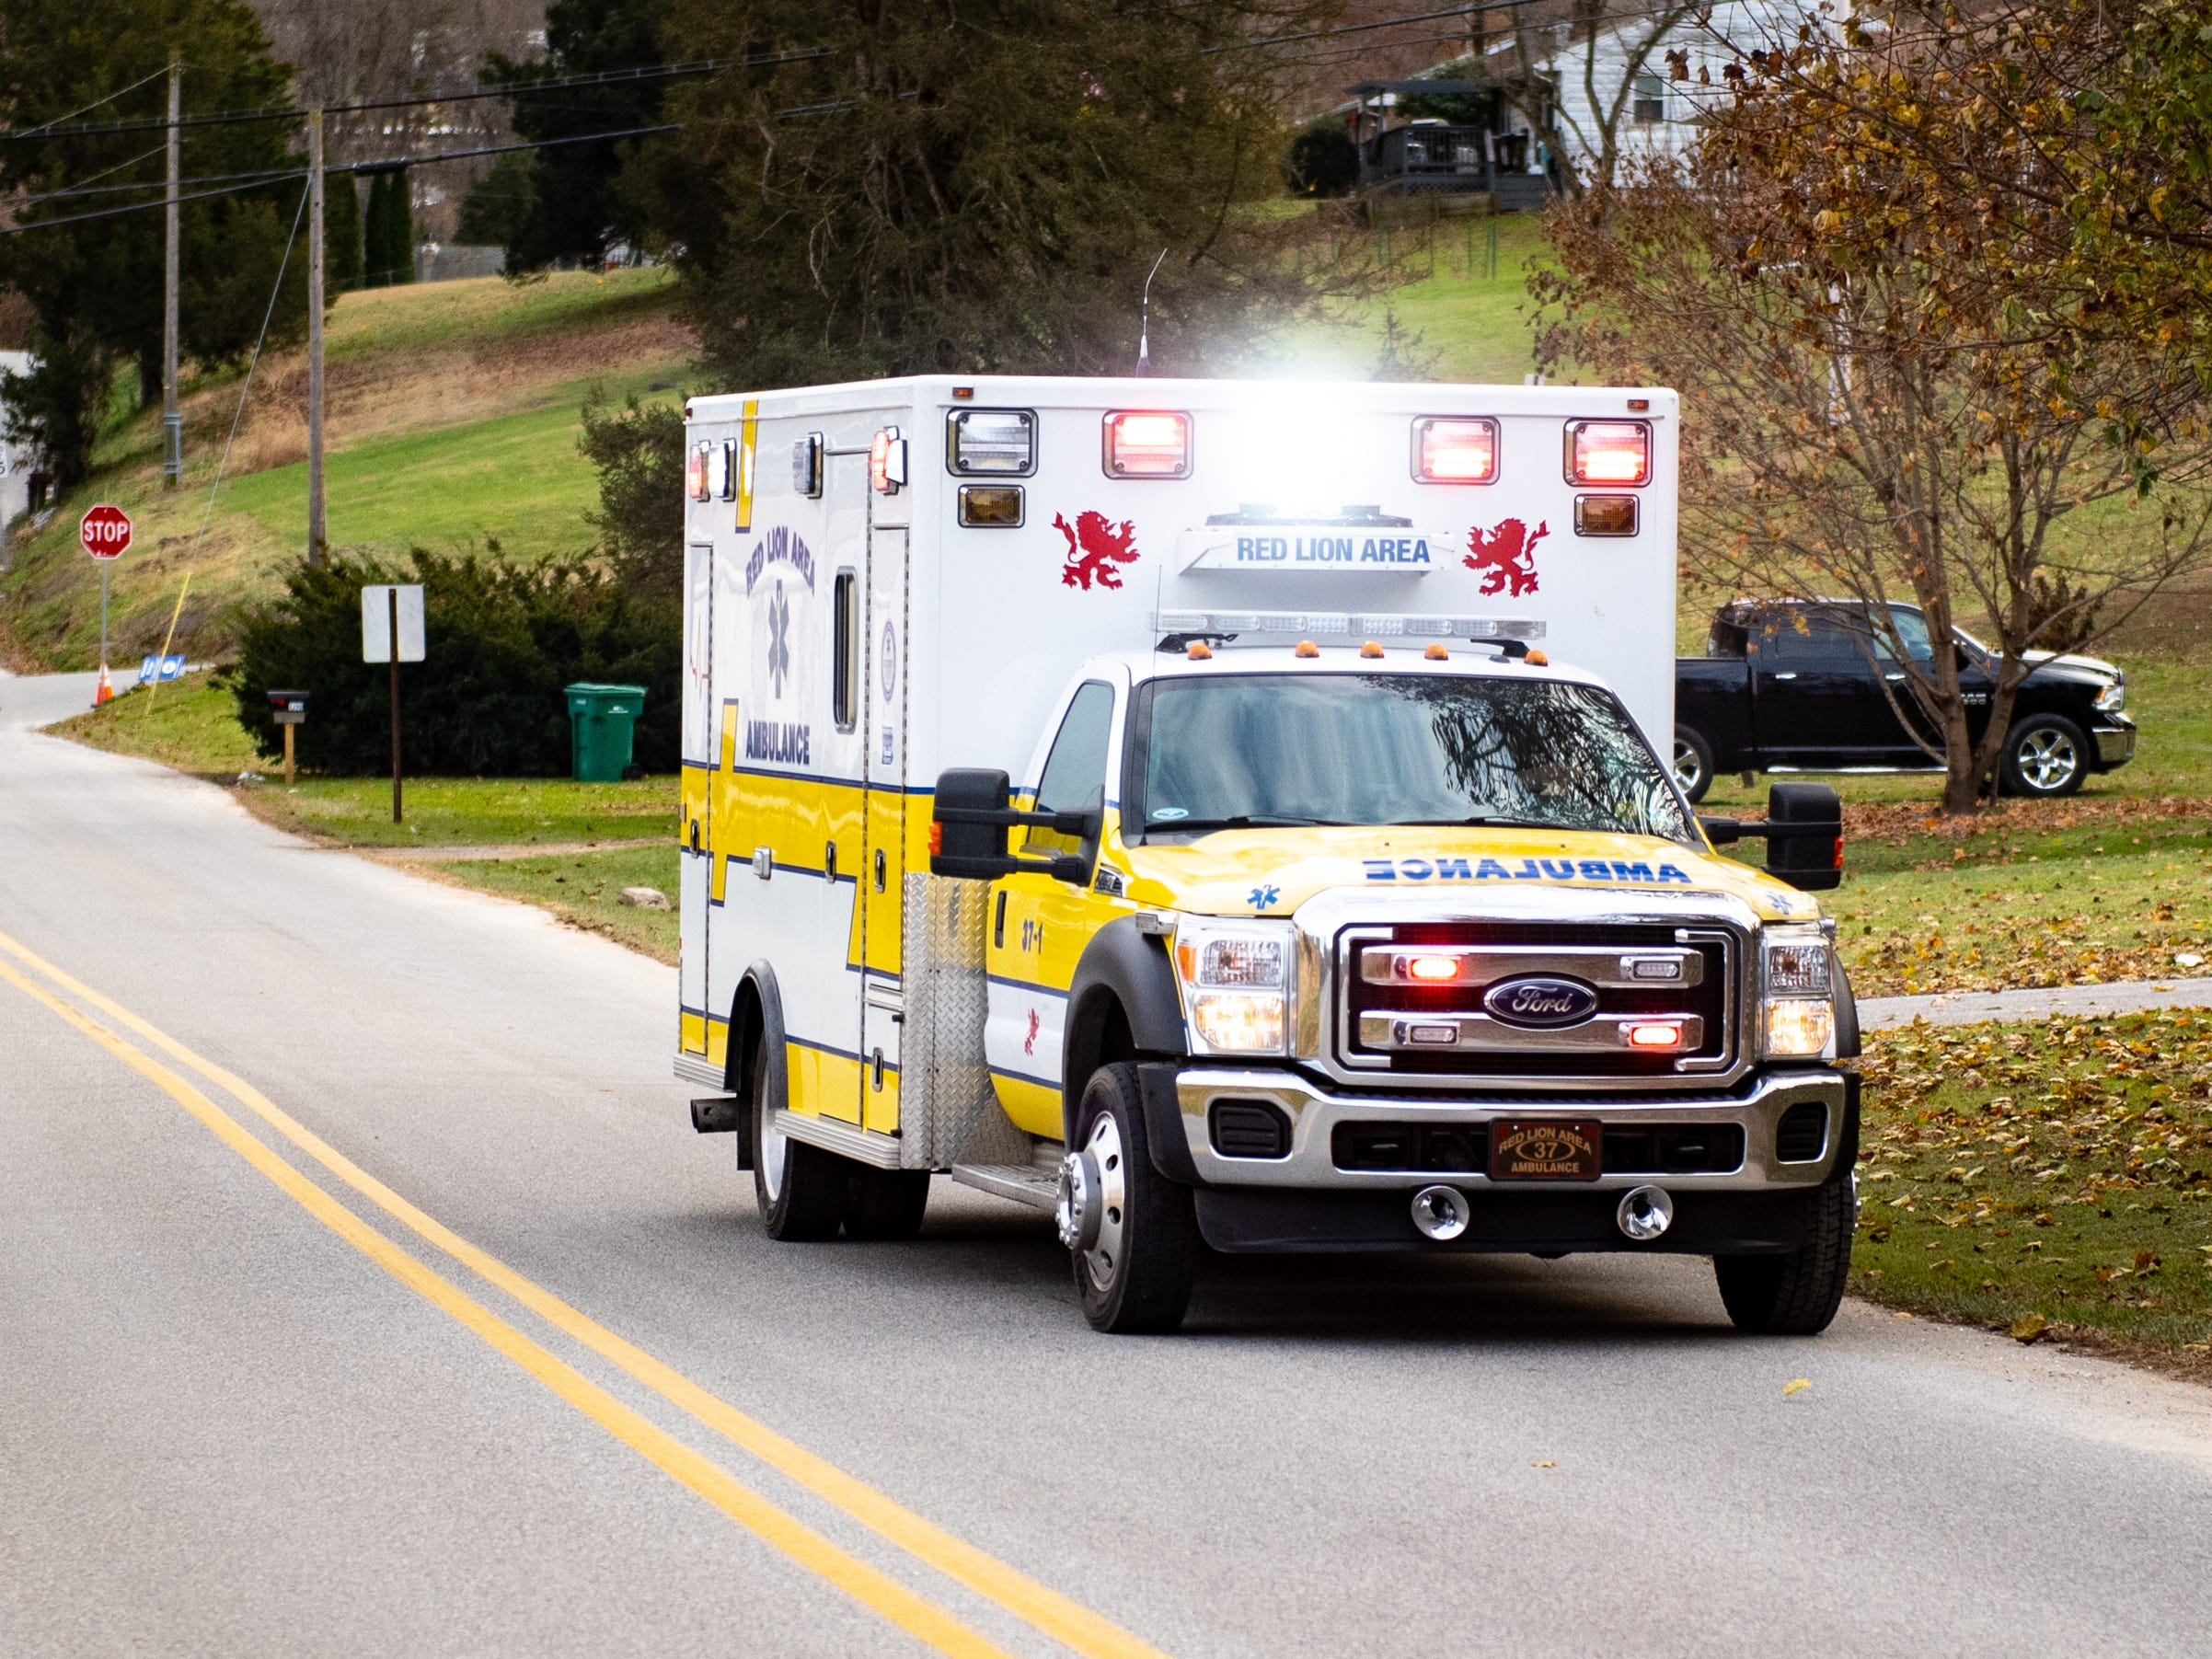 Emergency personnel were dispatched at 2:19Êp.m. to check out the scene, according to York County Control, November 23, 2018.